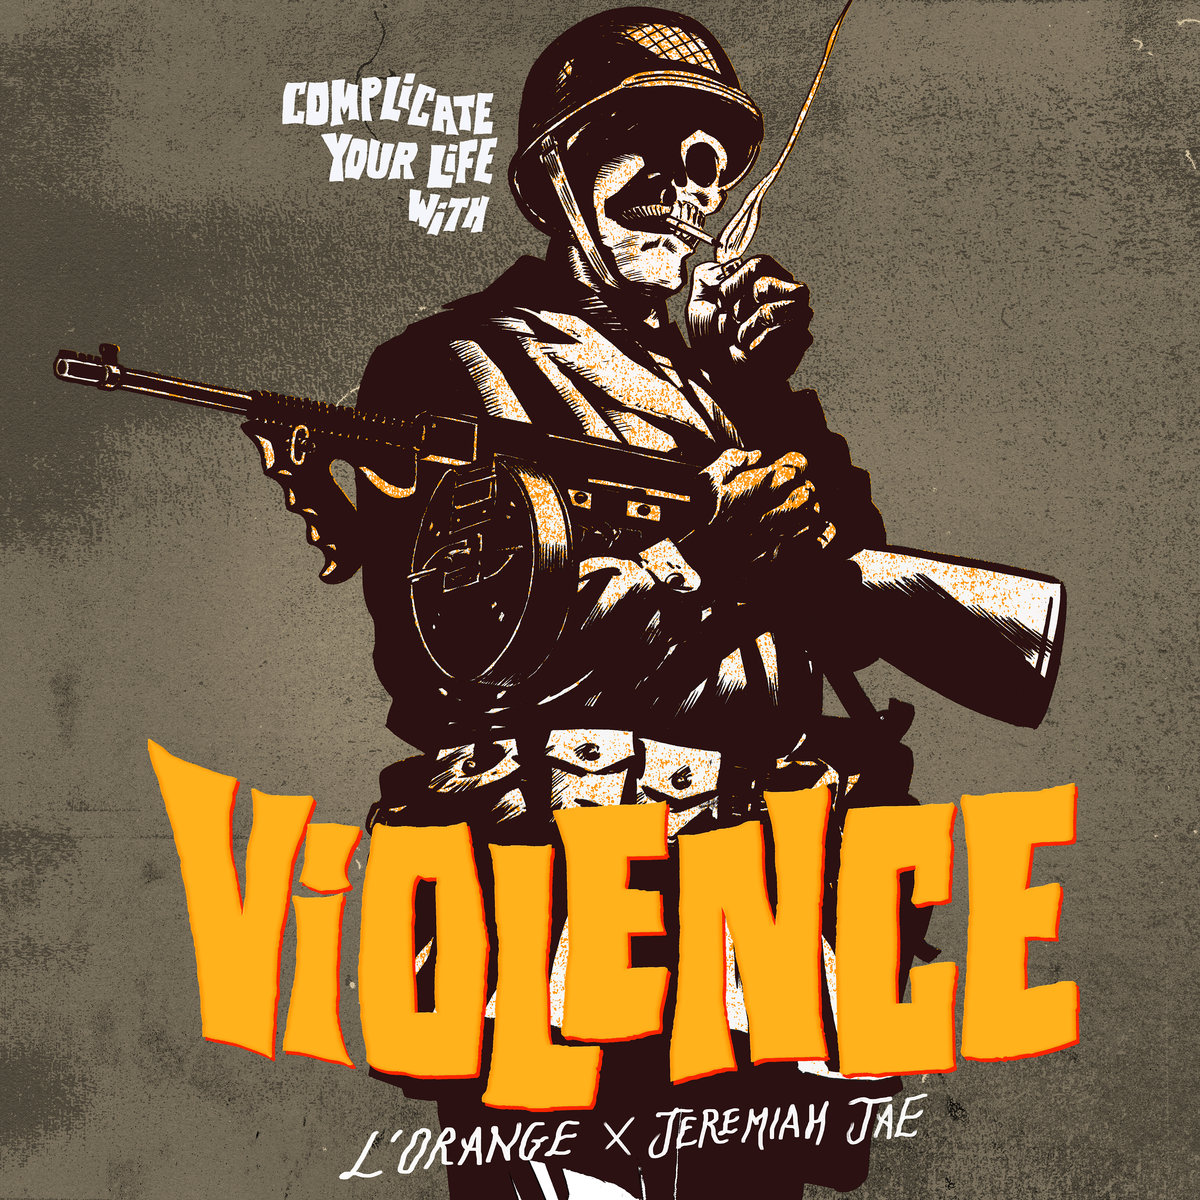 l'orange_jeremiah_jae_complicate_your_life_with_violence_01